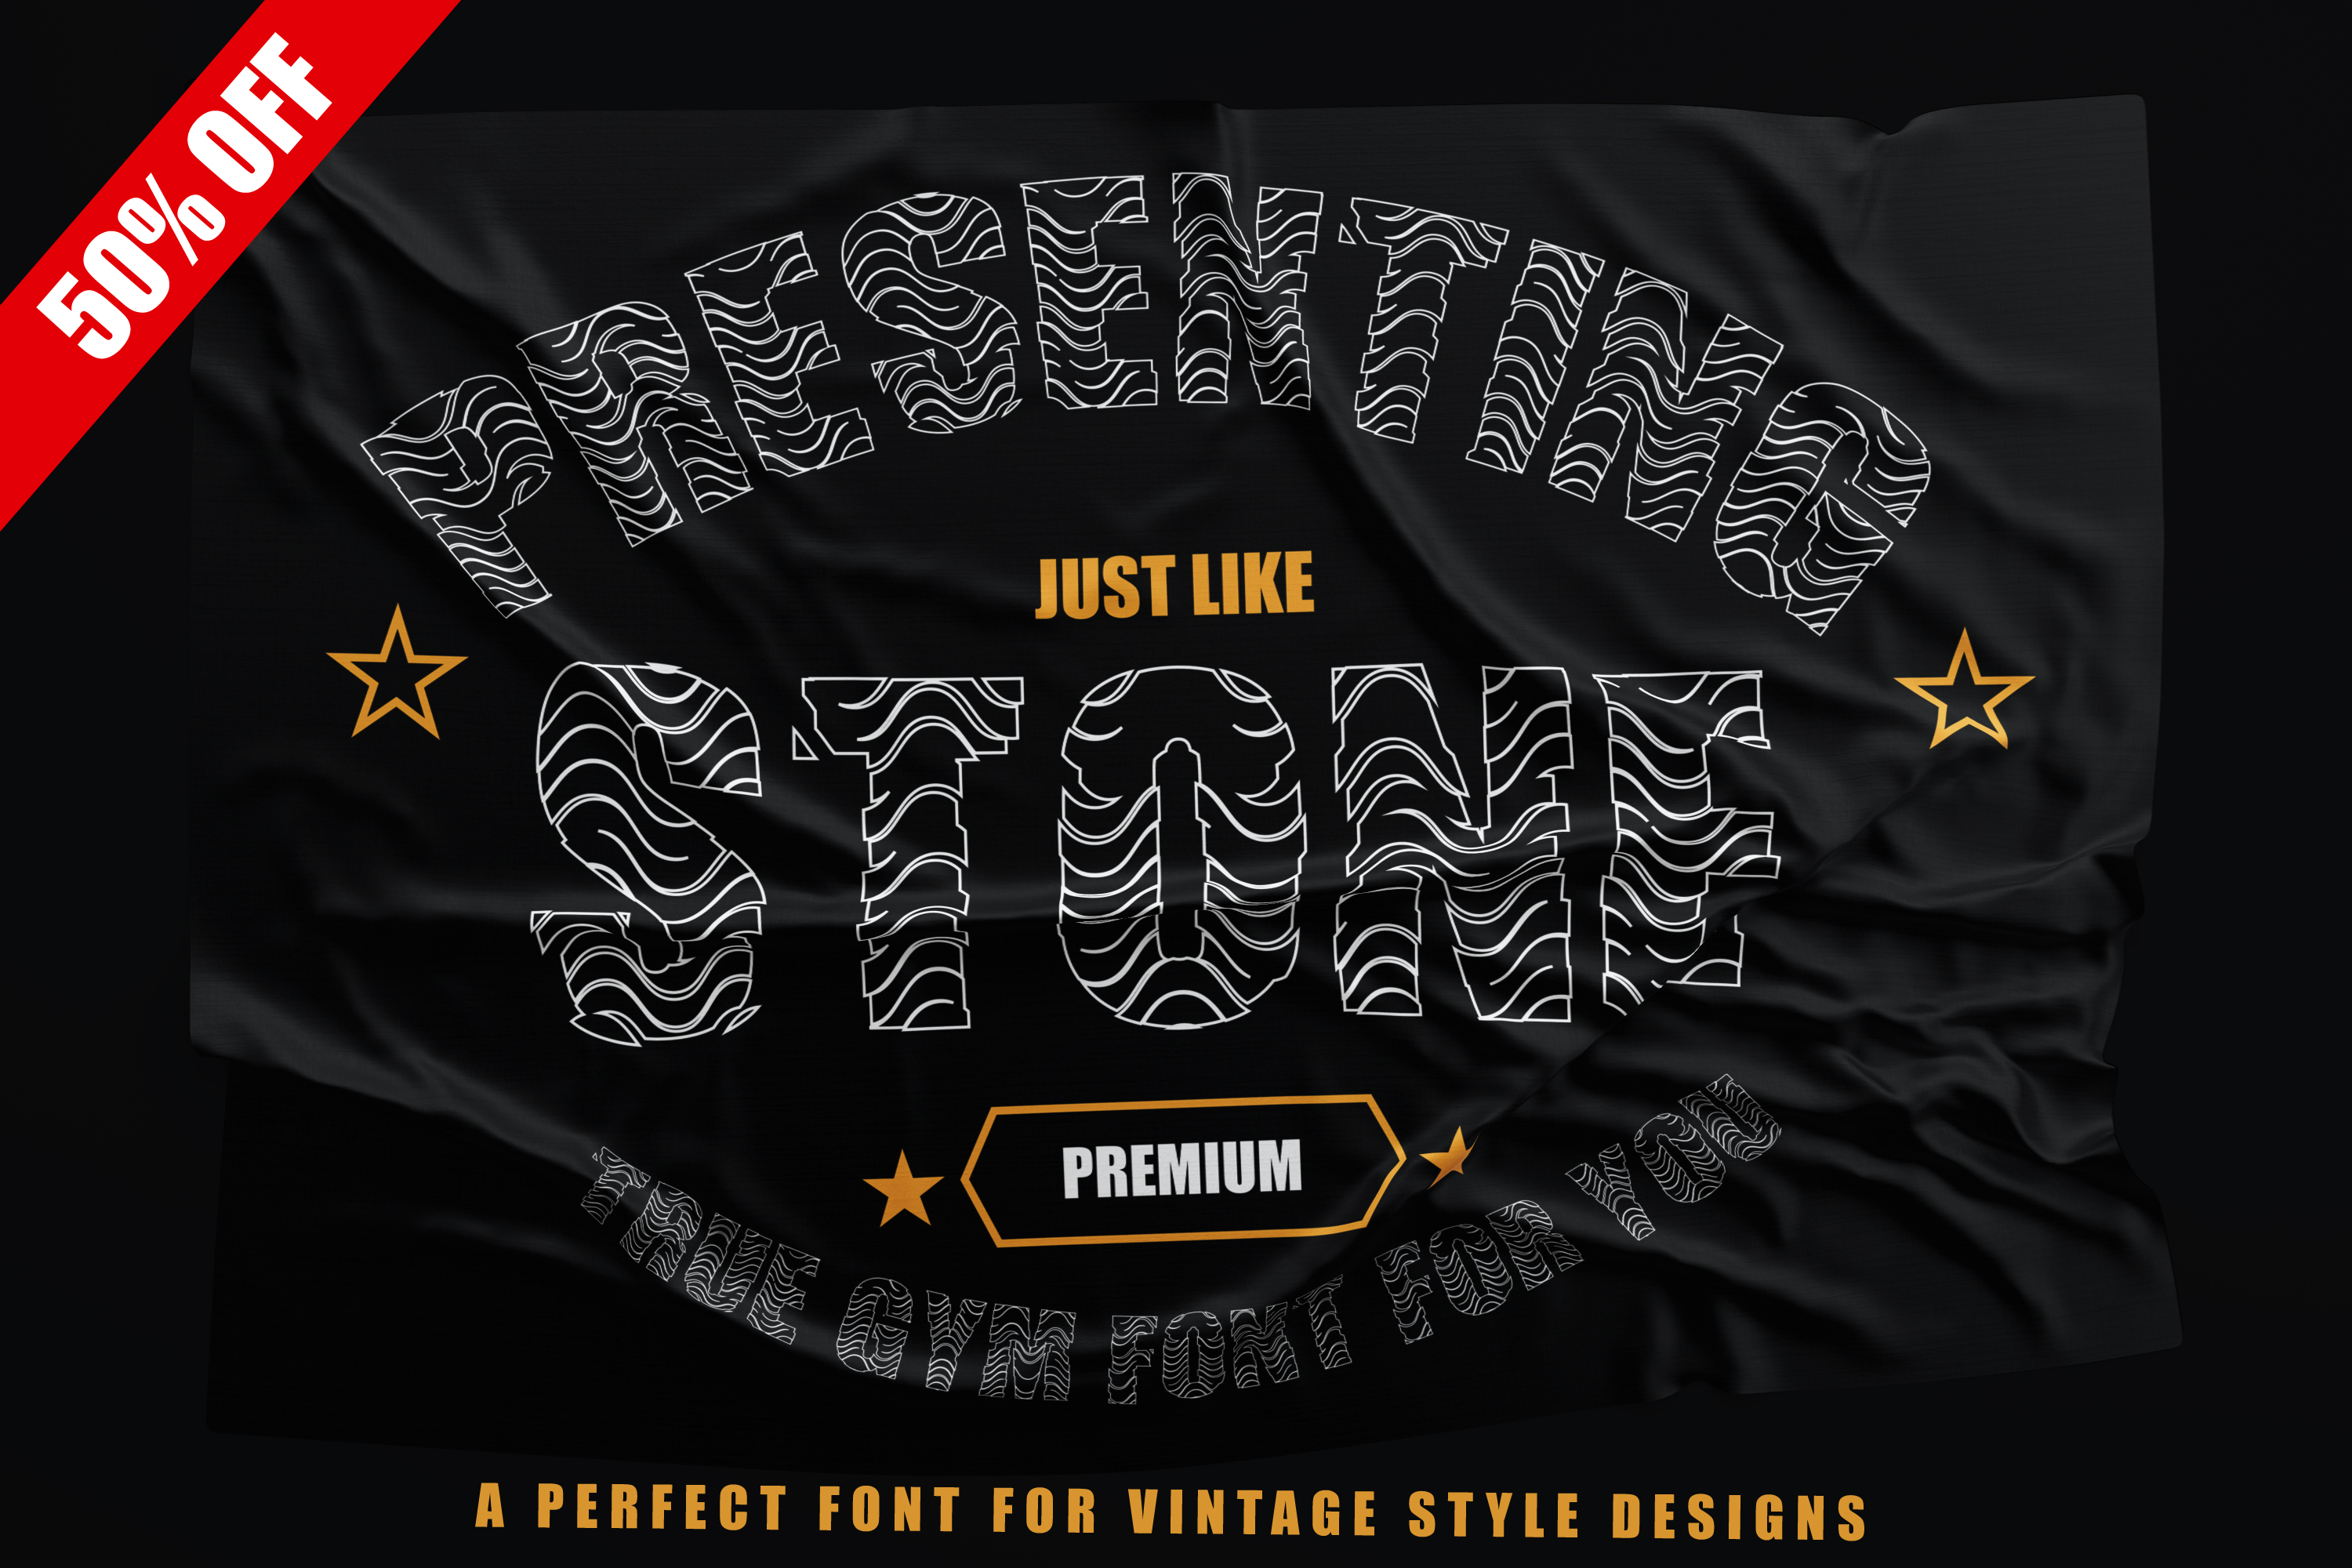 Just Like Stone - Creative Vintage Font for Designs example image 1